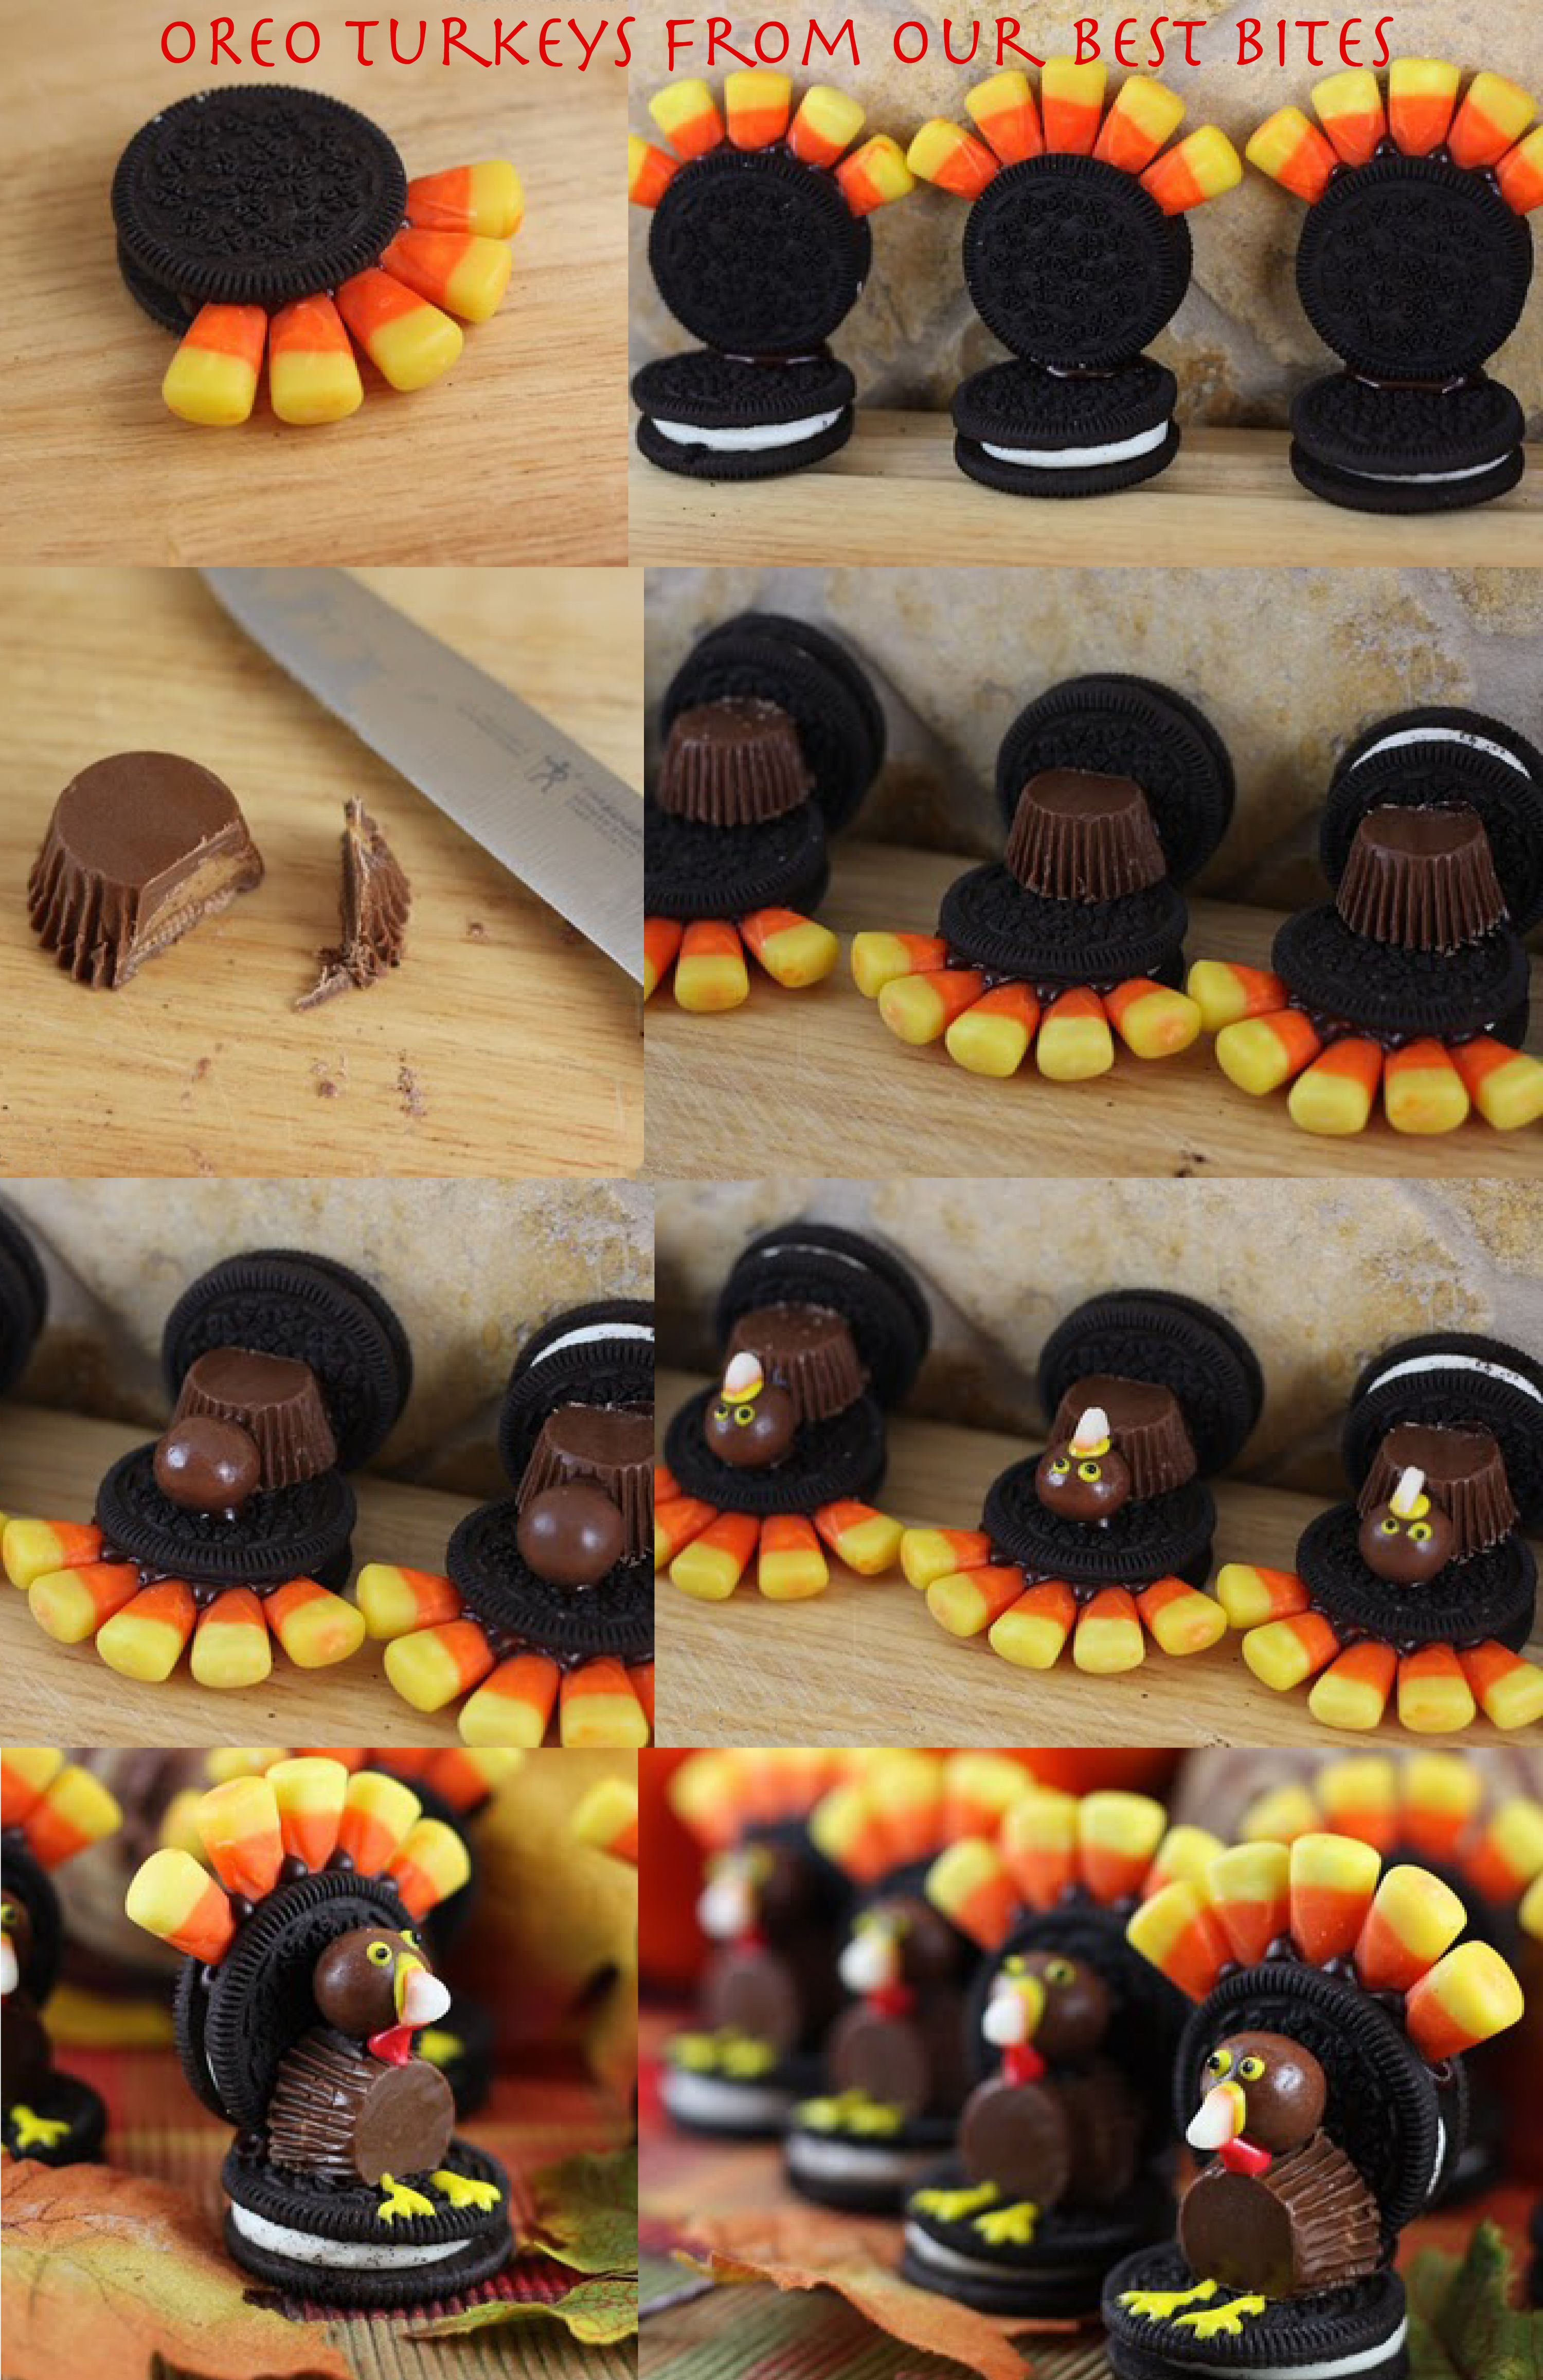 How To Make A Turkey Out Of Candy Thanksgiving Oreo TurkeysBest RecipeBest